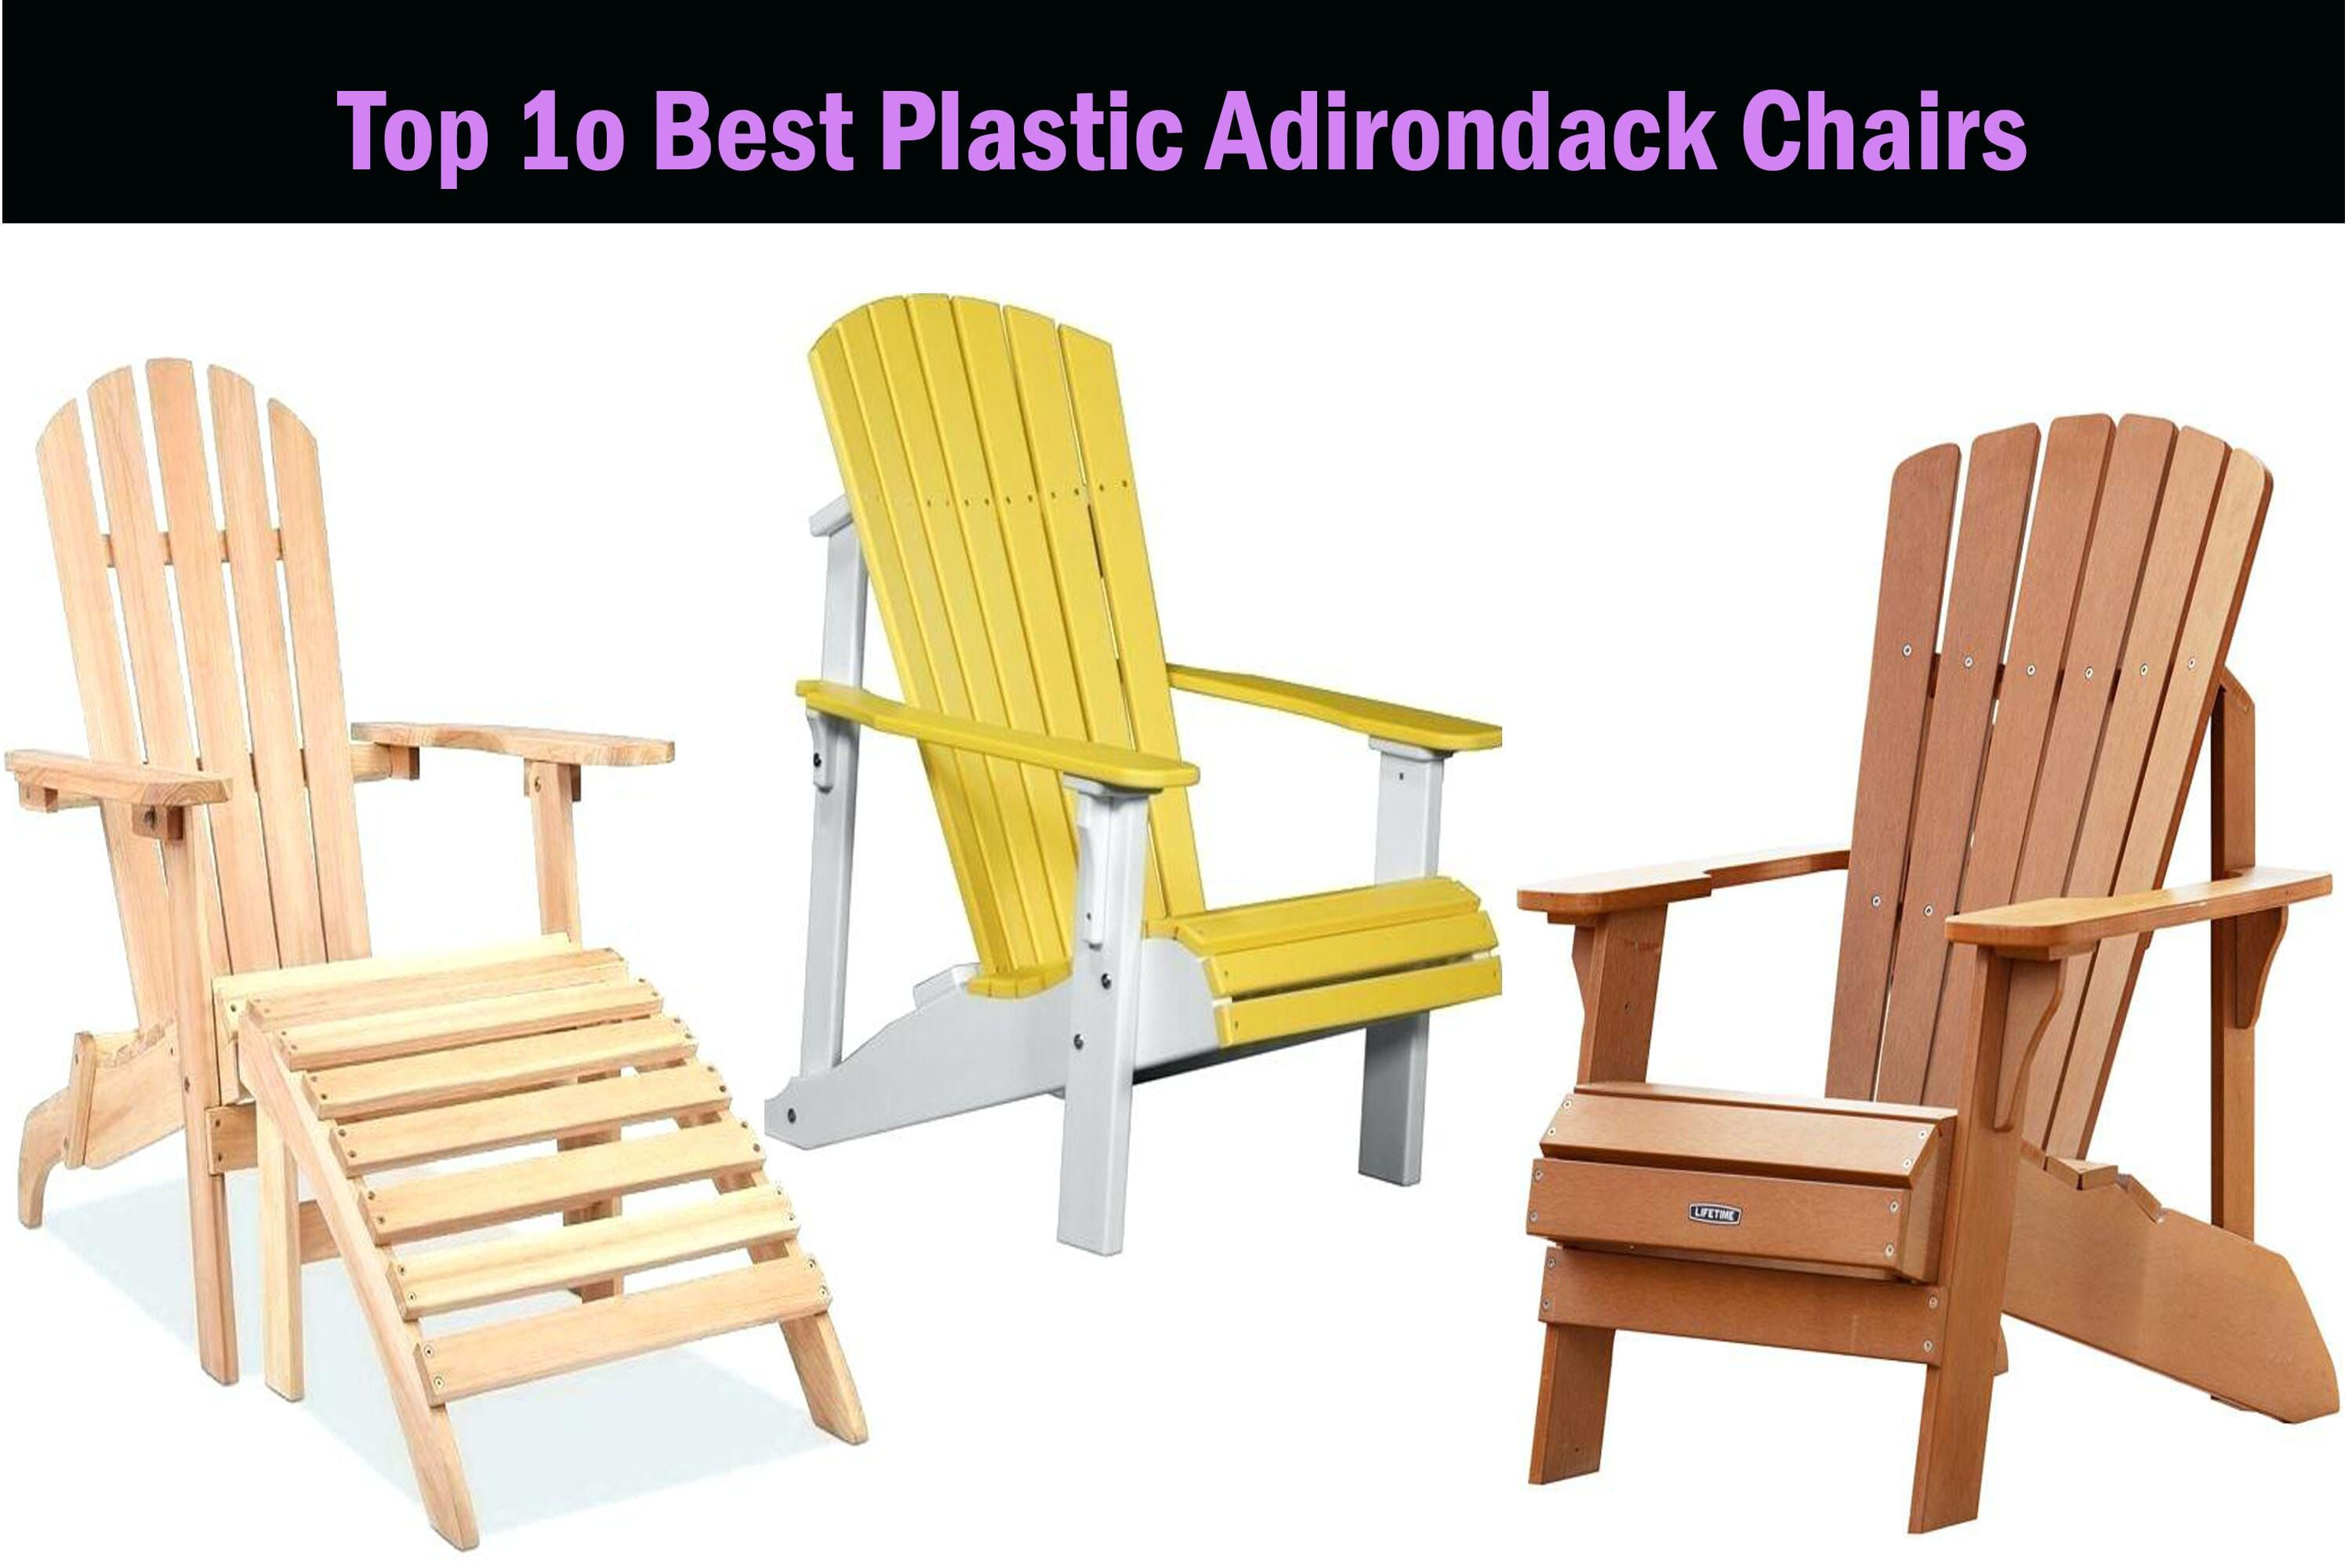 Table Top 10 Best Plastic Adirondack Chairs Review 2020 Plastic